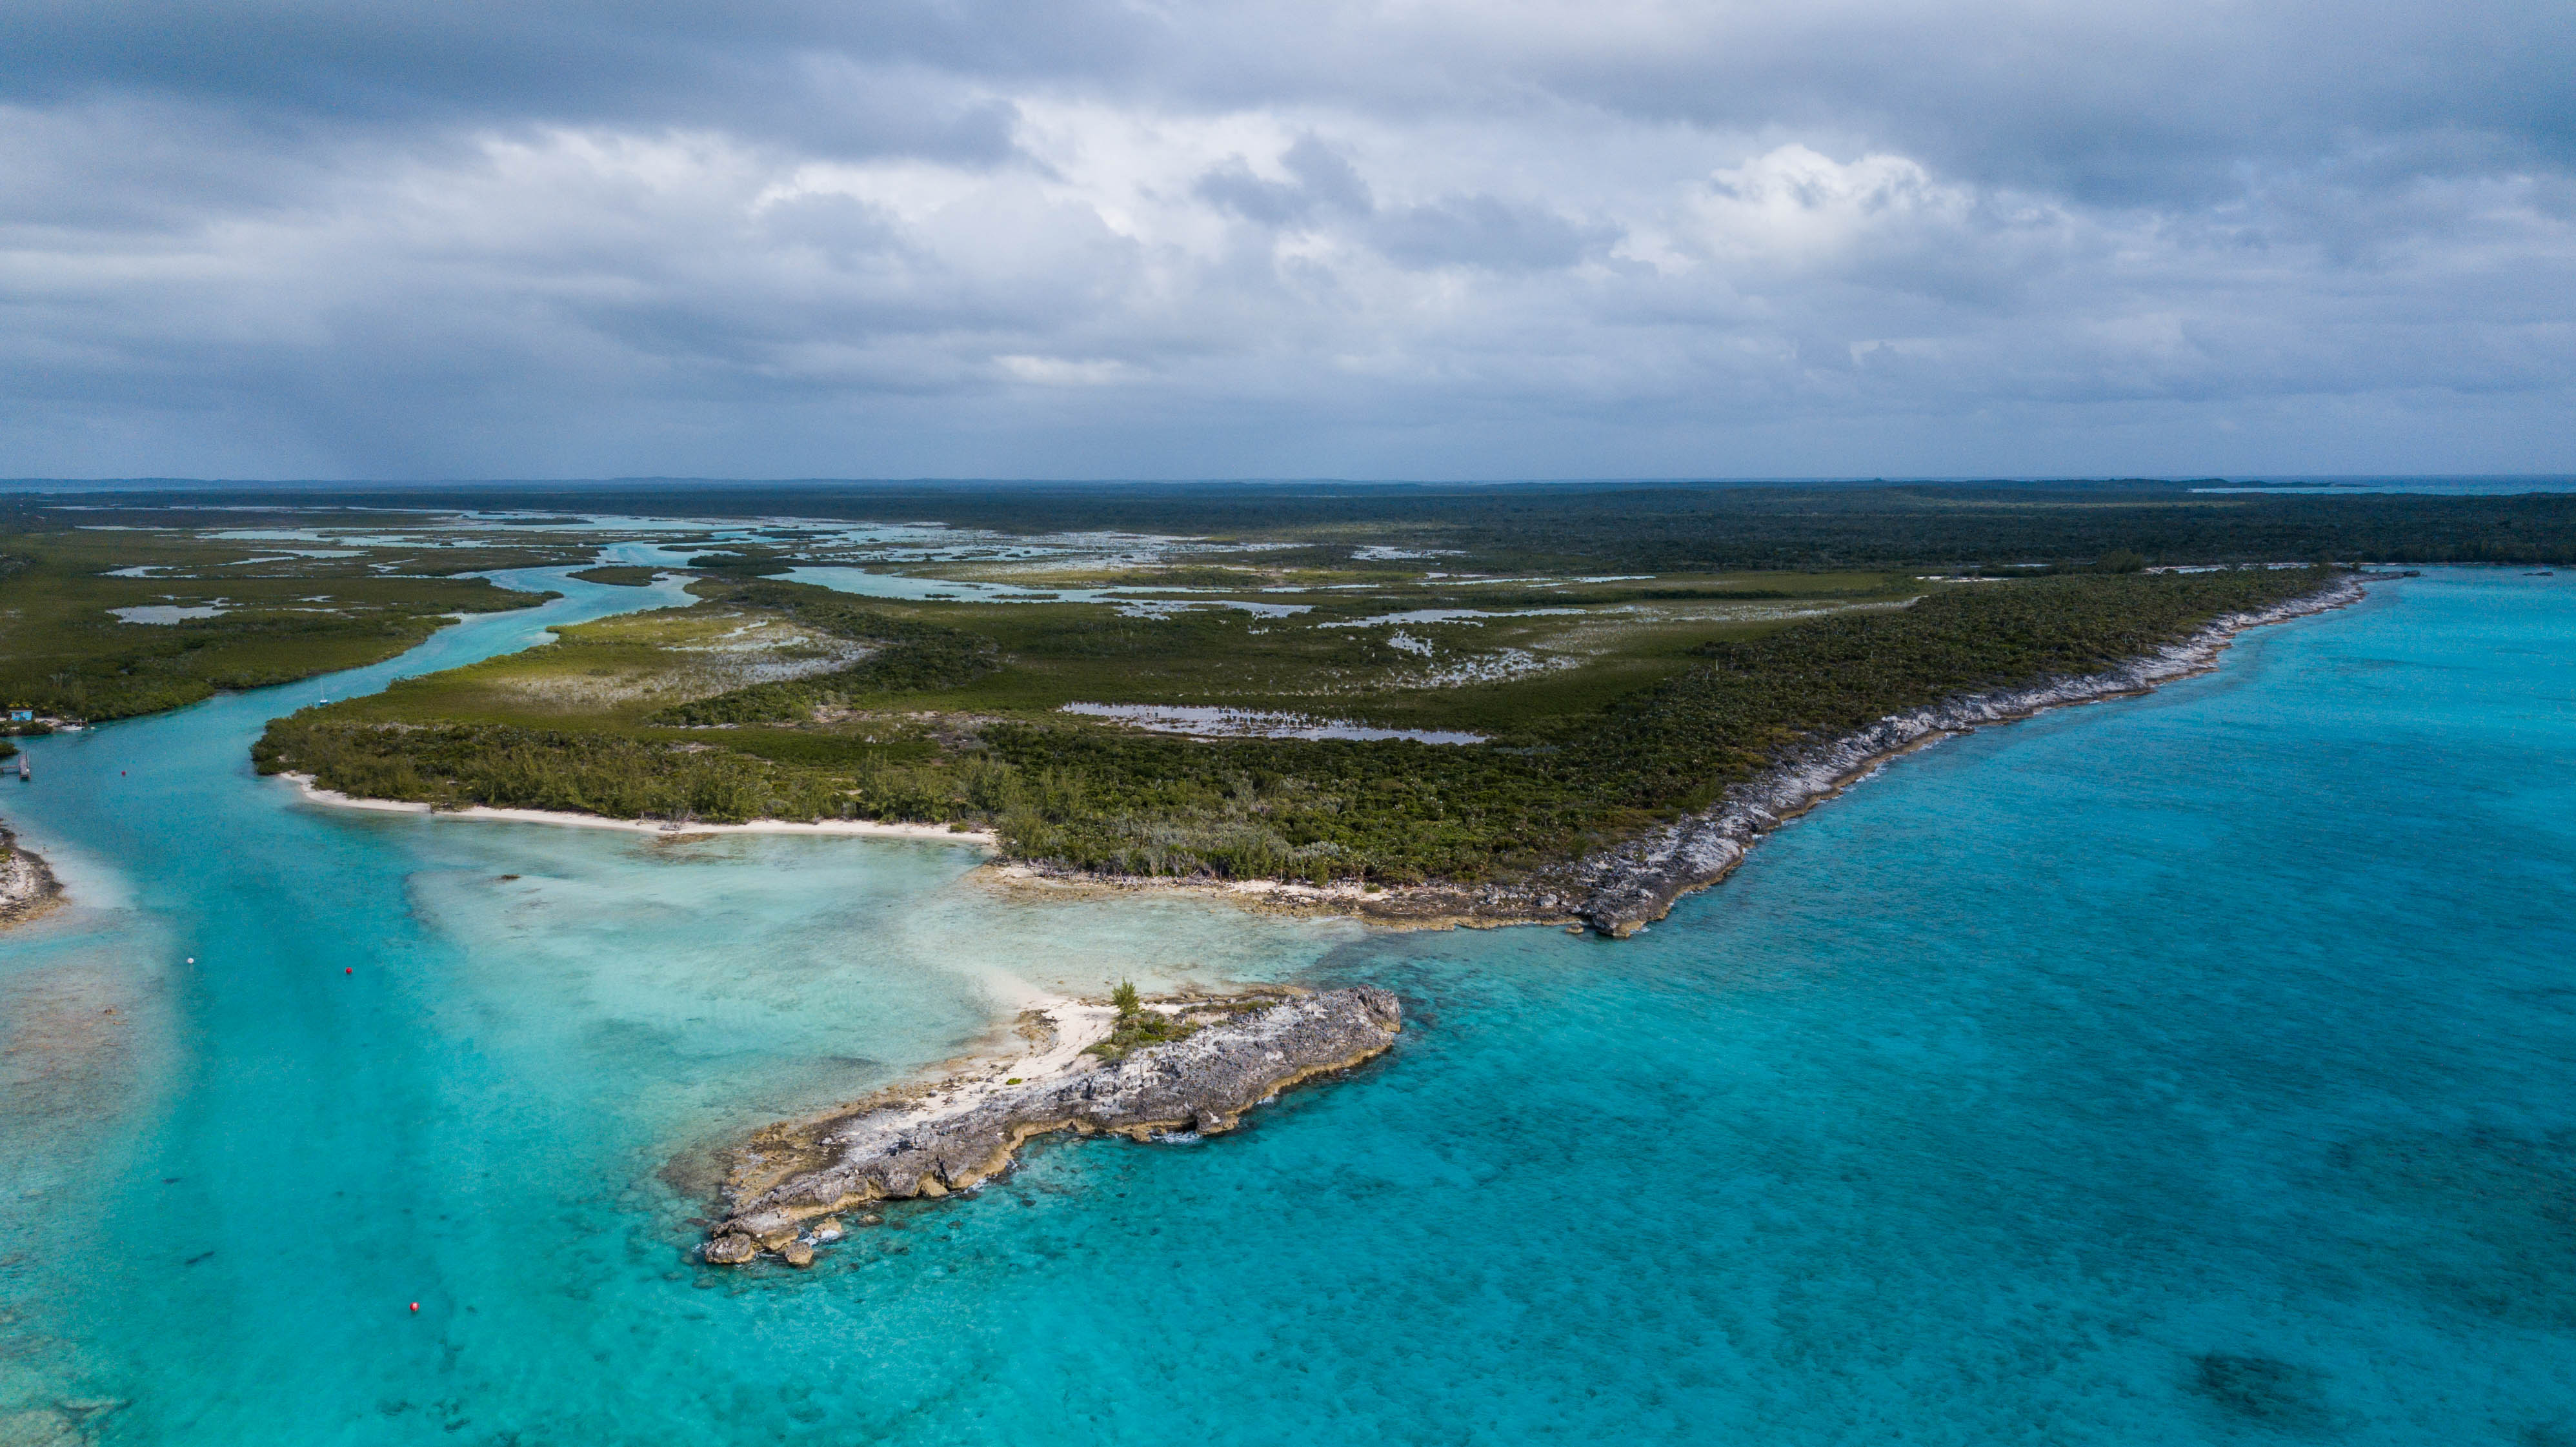 Bahamas All Inclusive >> Hawks Nest Cay, Cat Island - Bahamas, Caribbean - Private Islands for Sale